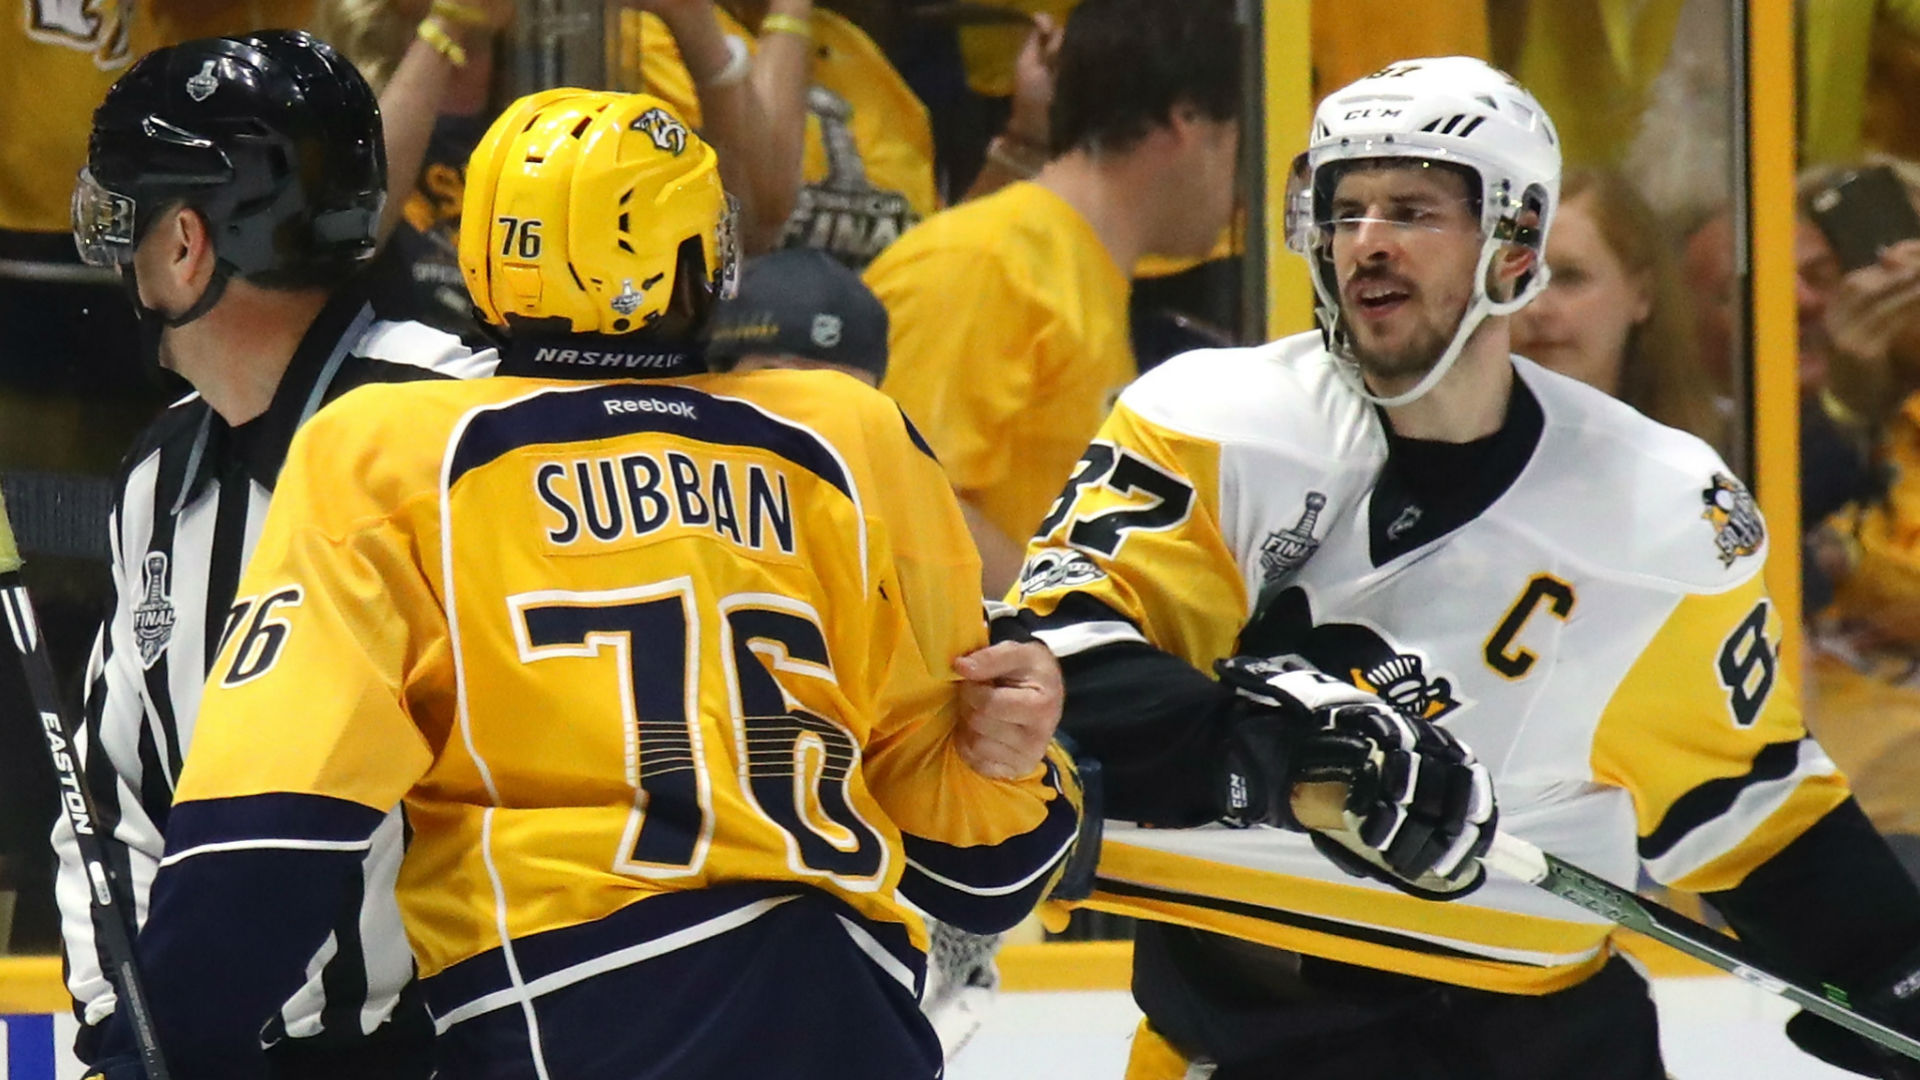 Subban and Nashville have Penguins distracted in Stanley Cup Finals